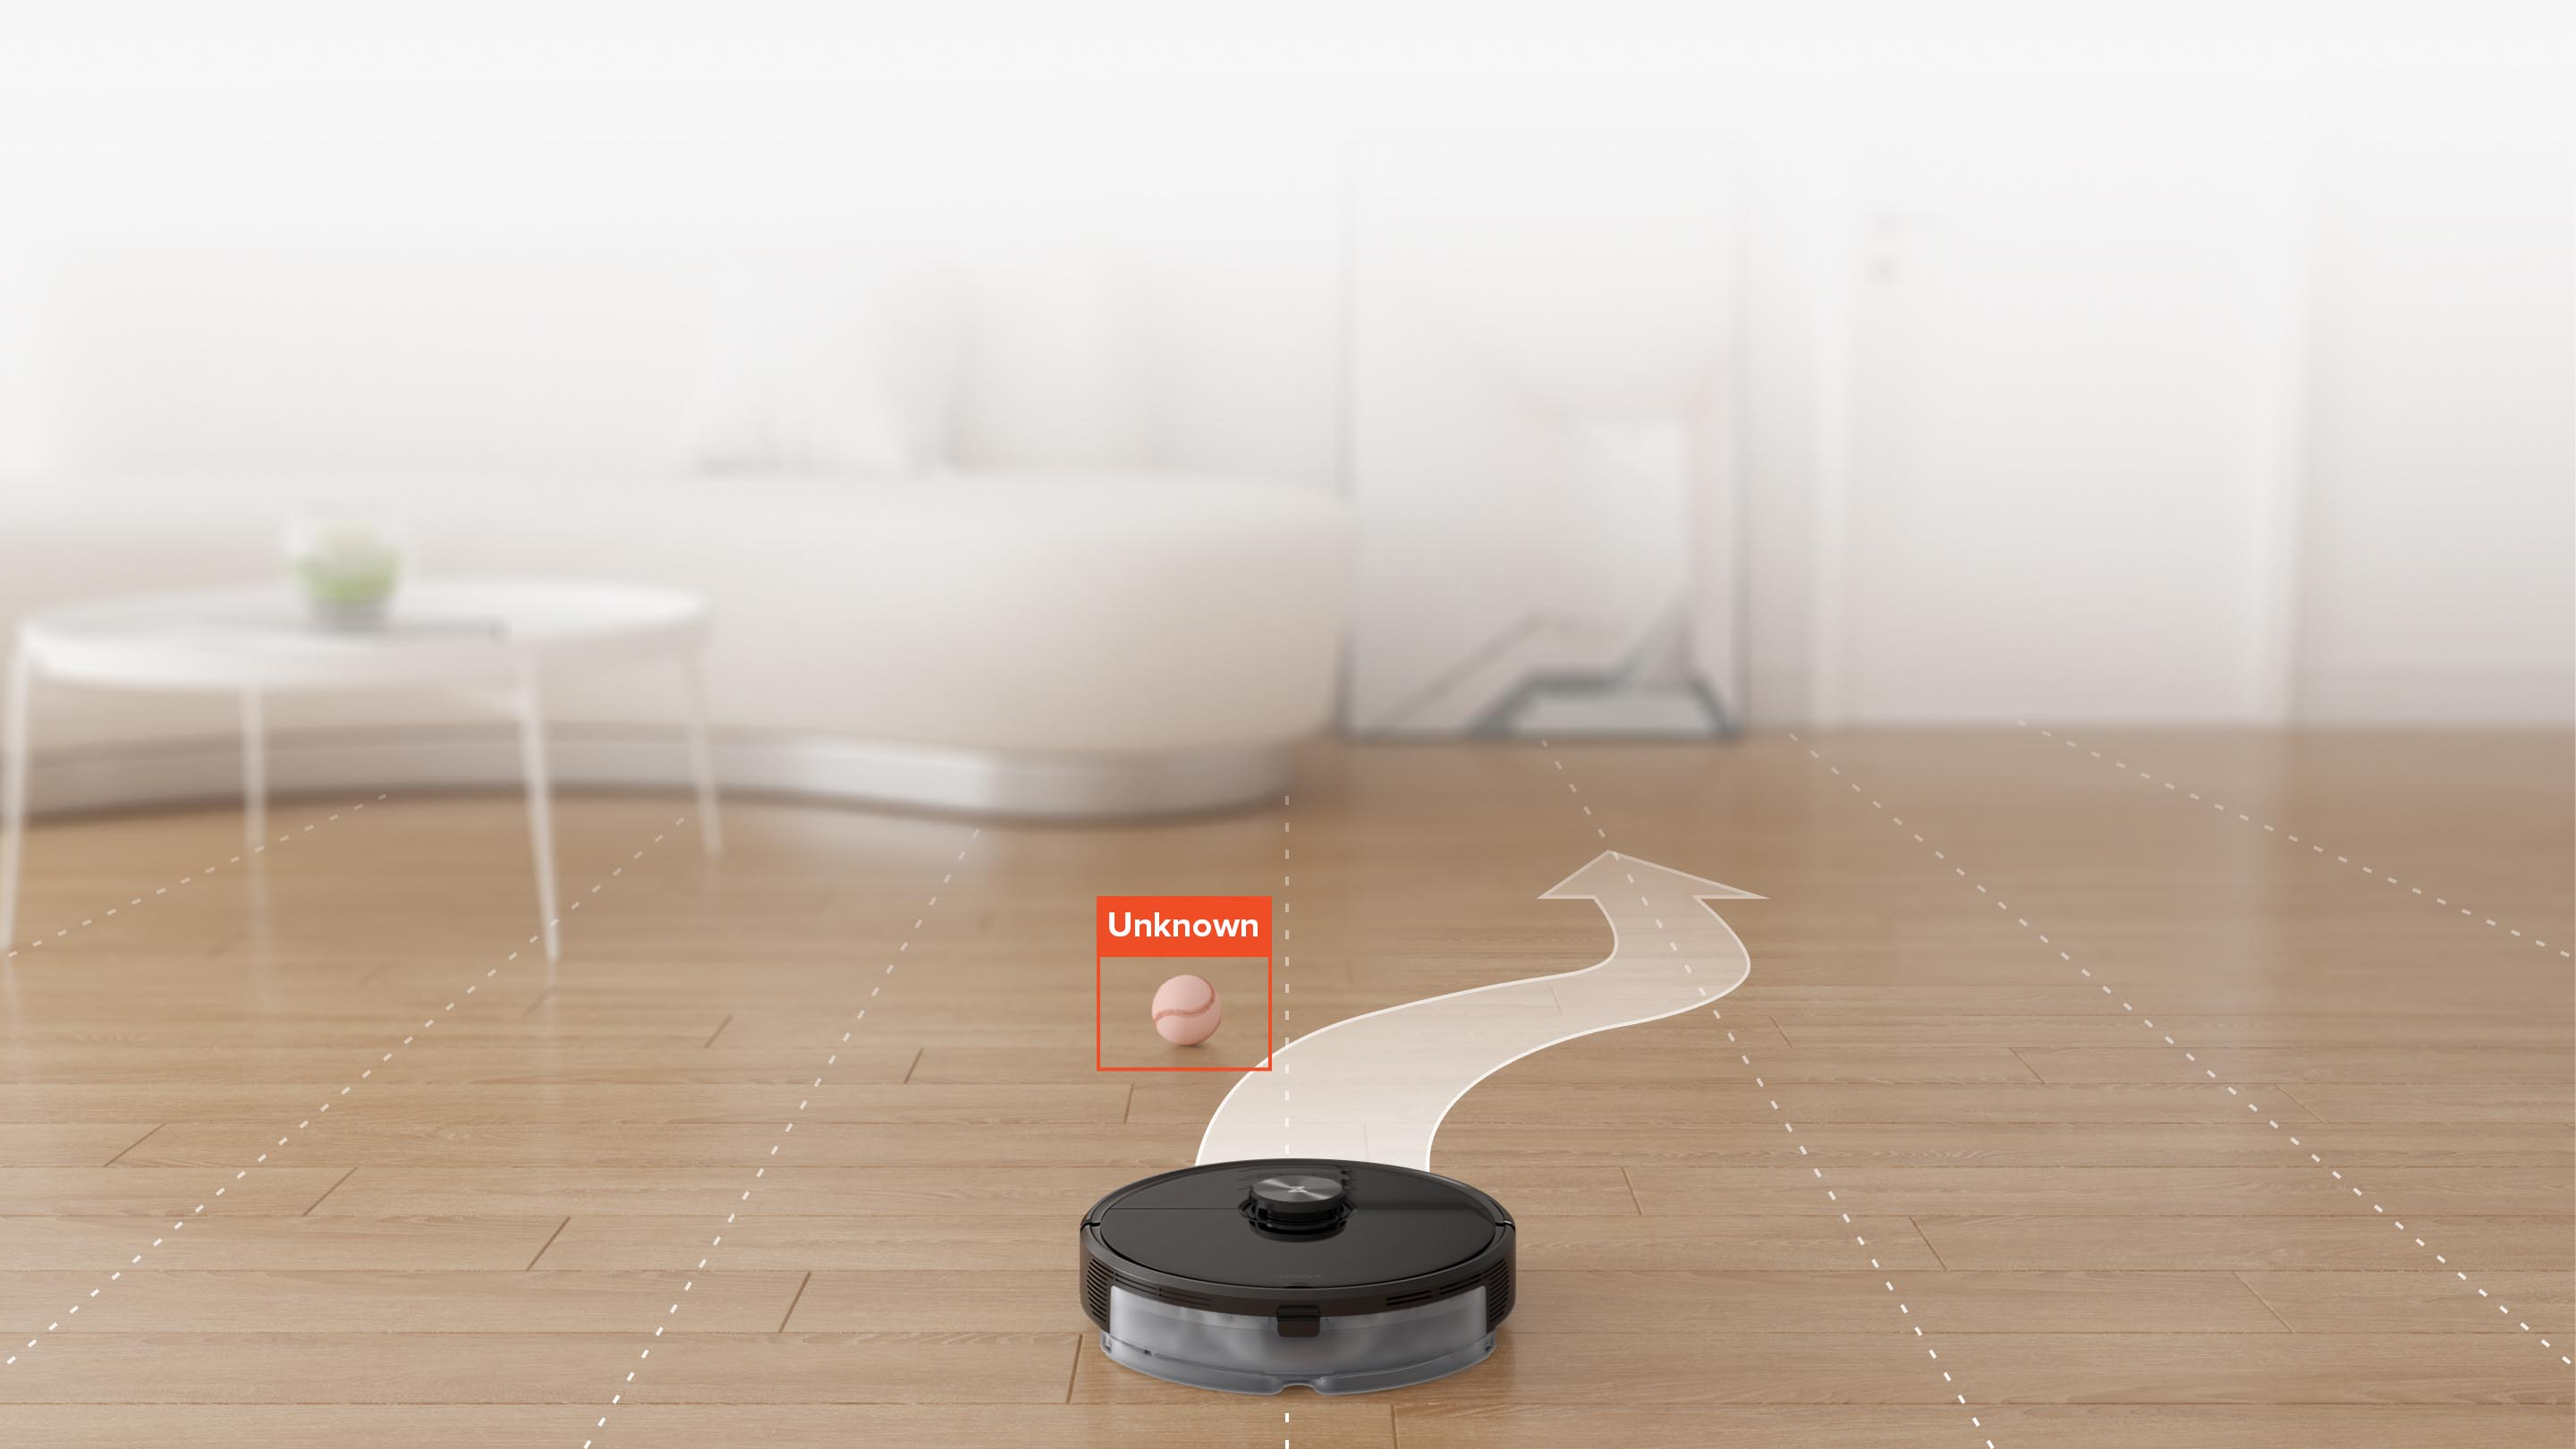 Roborock S6 MaxV can recognize and avoid unknown object small as 5cm wide and 3cm tall